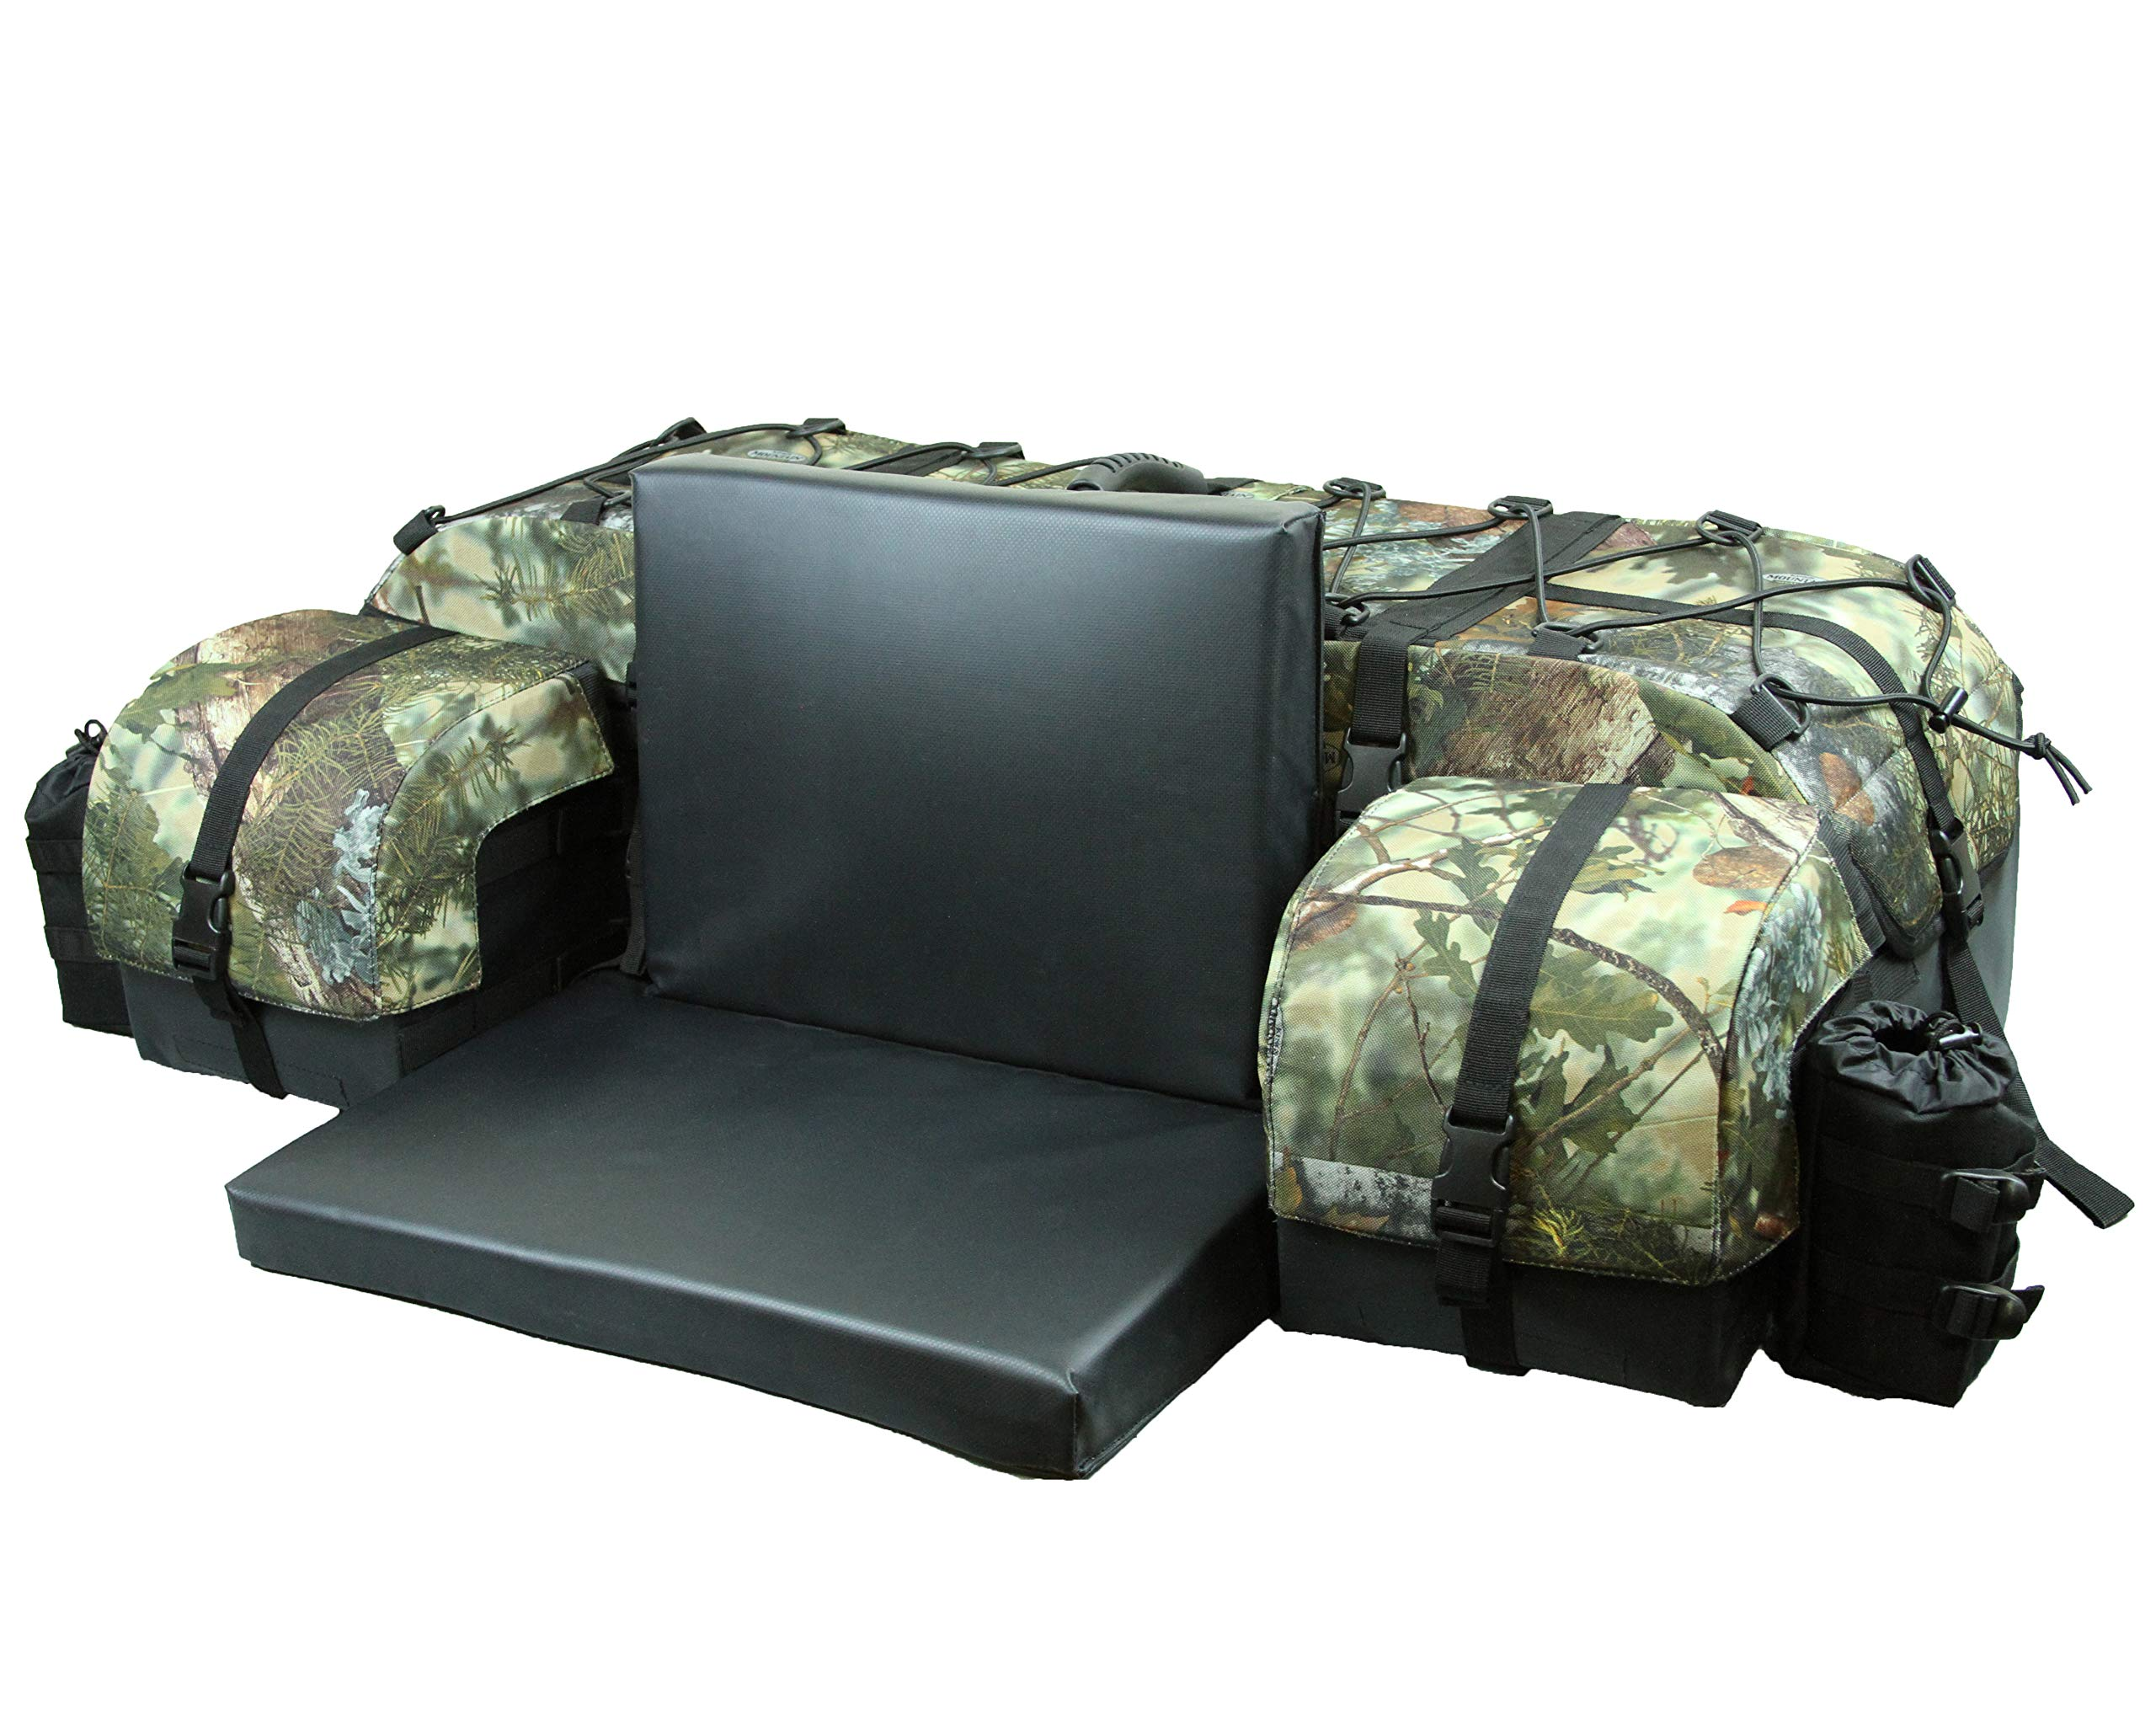 ATV Tek ACBMOB Kings Mountain Shadow Camo ATV Cargo Bag by ATV Tek